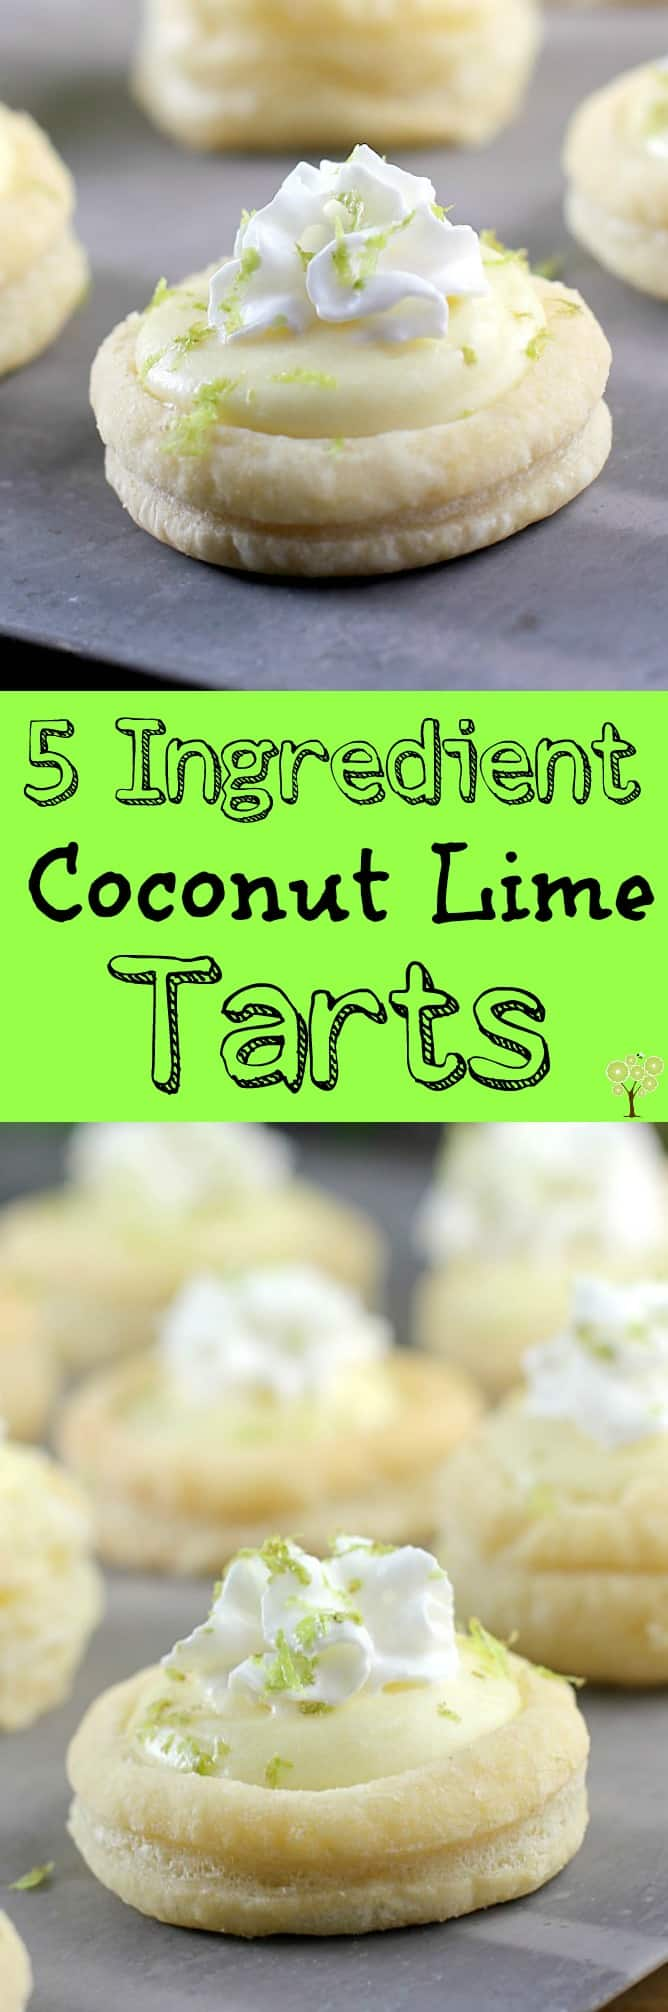 5 Ingredient Coconut Lime Tarts http://wp.me/p4qC4h-3EB #SpringReddi #ad